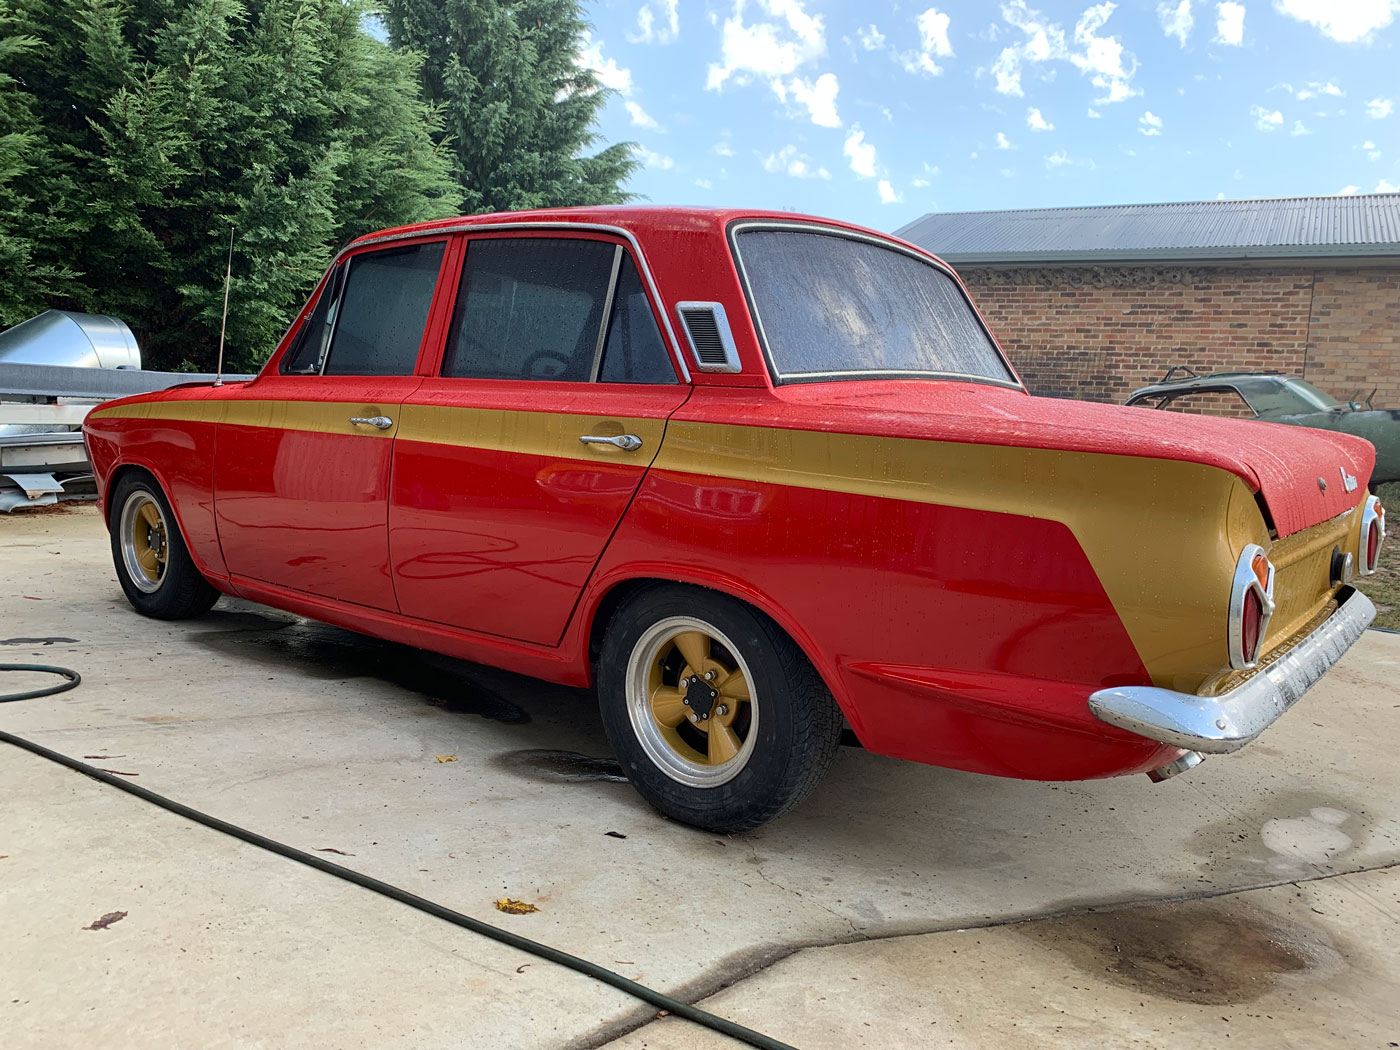 1965 Mk1 Ford Cortina, currently being built up as a race car.